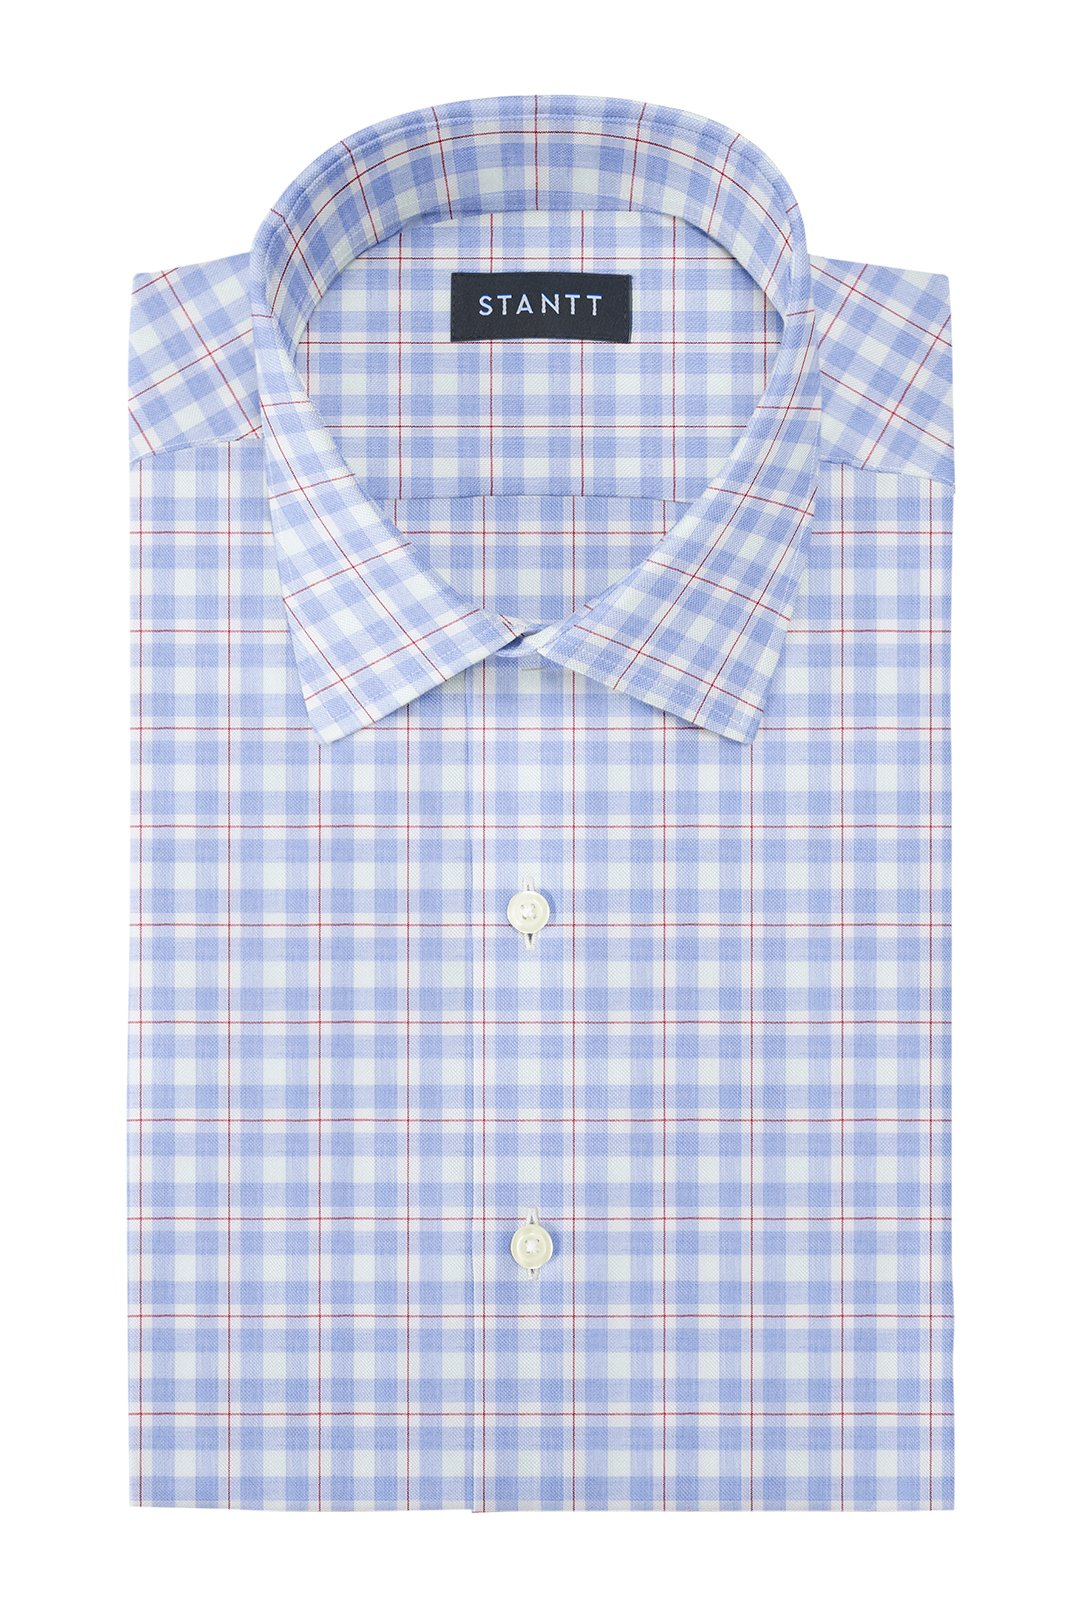 Light Blue and Red Windowpane: Modified-Spread Collar, Barrel Cuff